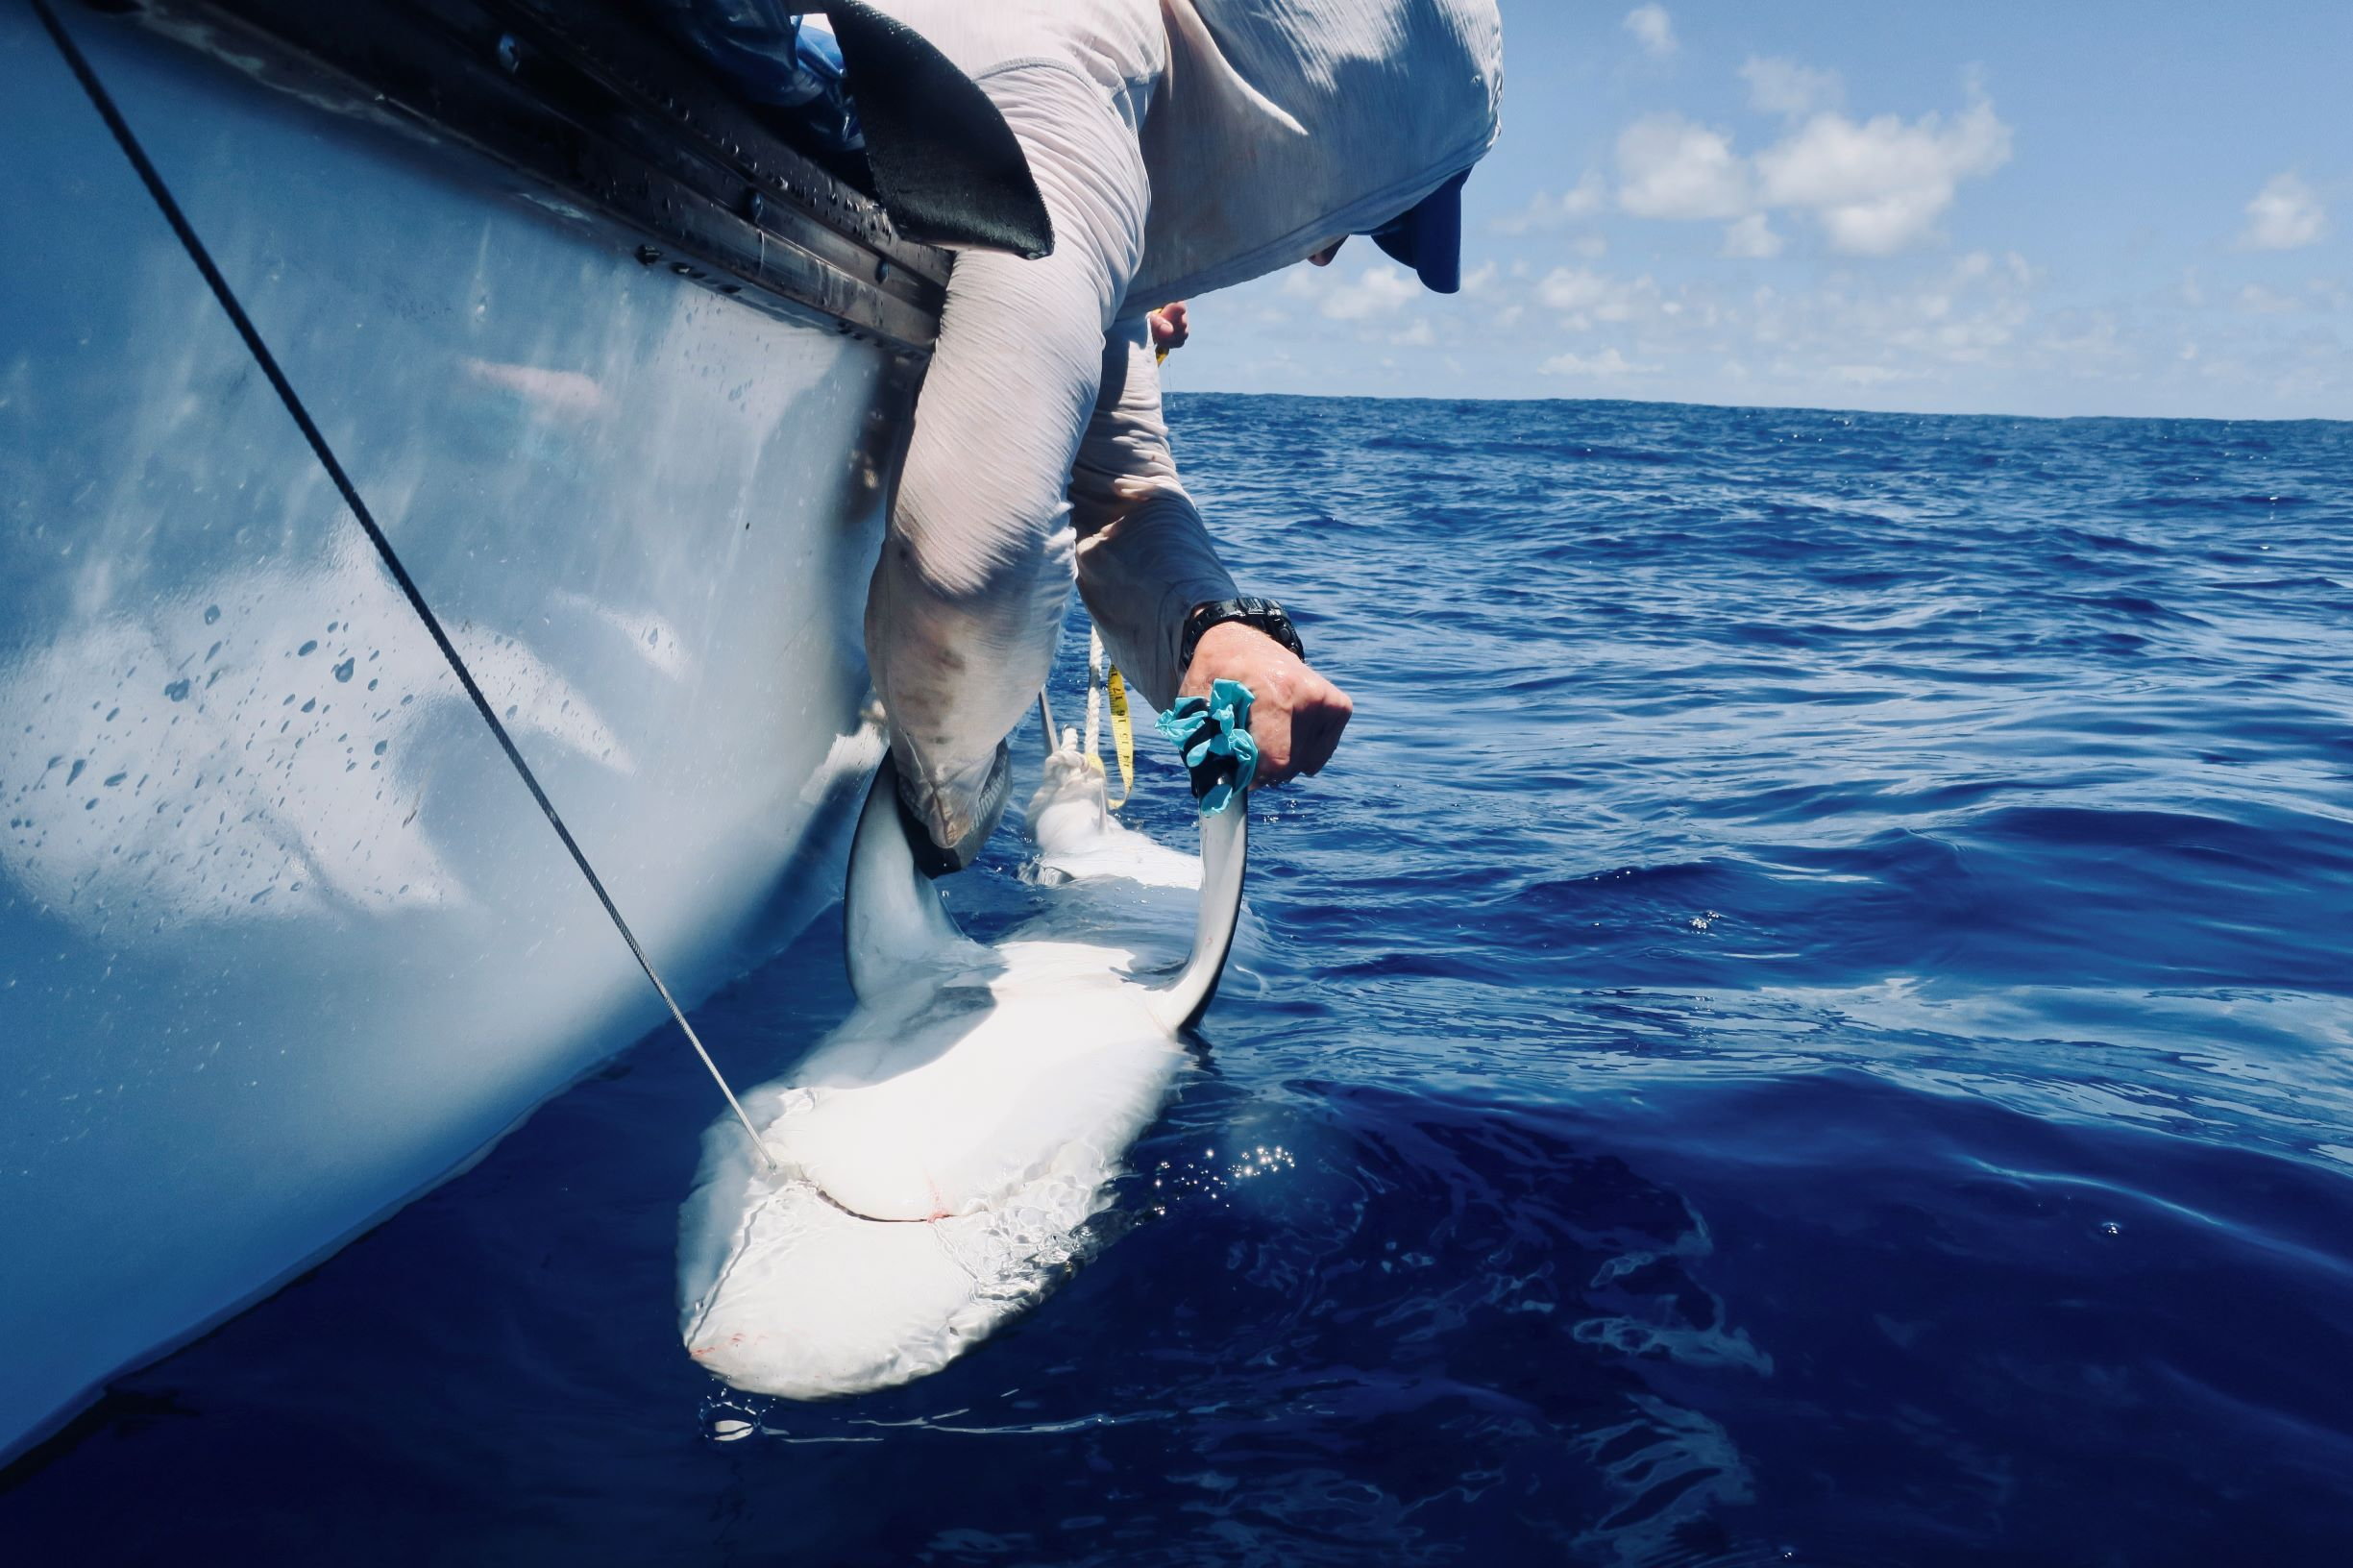 ZSL researchers release a silvertip shark in the British Indian Ocean Territory (BIOT) after fitting it with an acoustic tag. Advances in electronic tagging may help reduce illegal fishing in protected areas by remotely detecting fishing events as they happen.